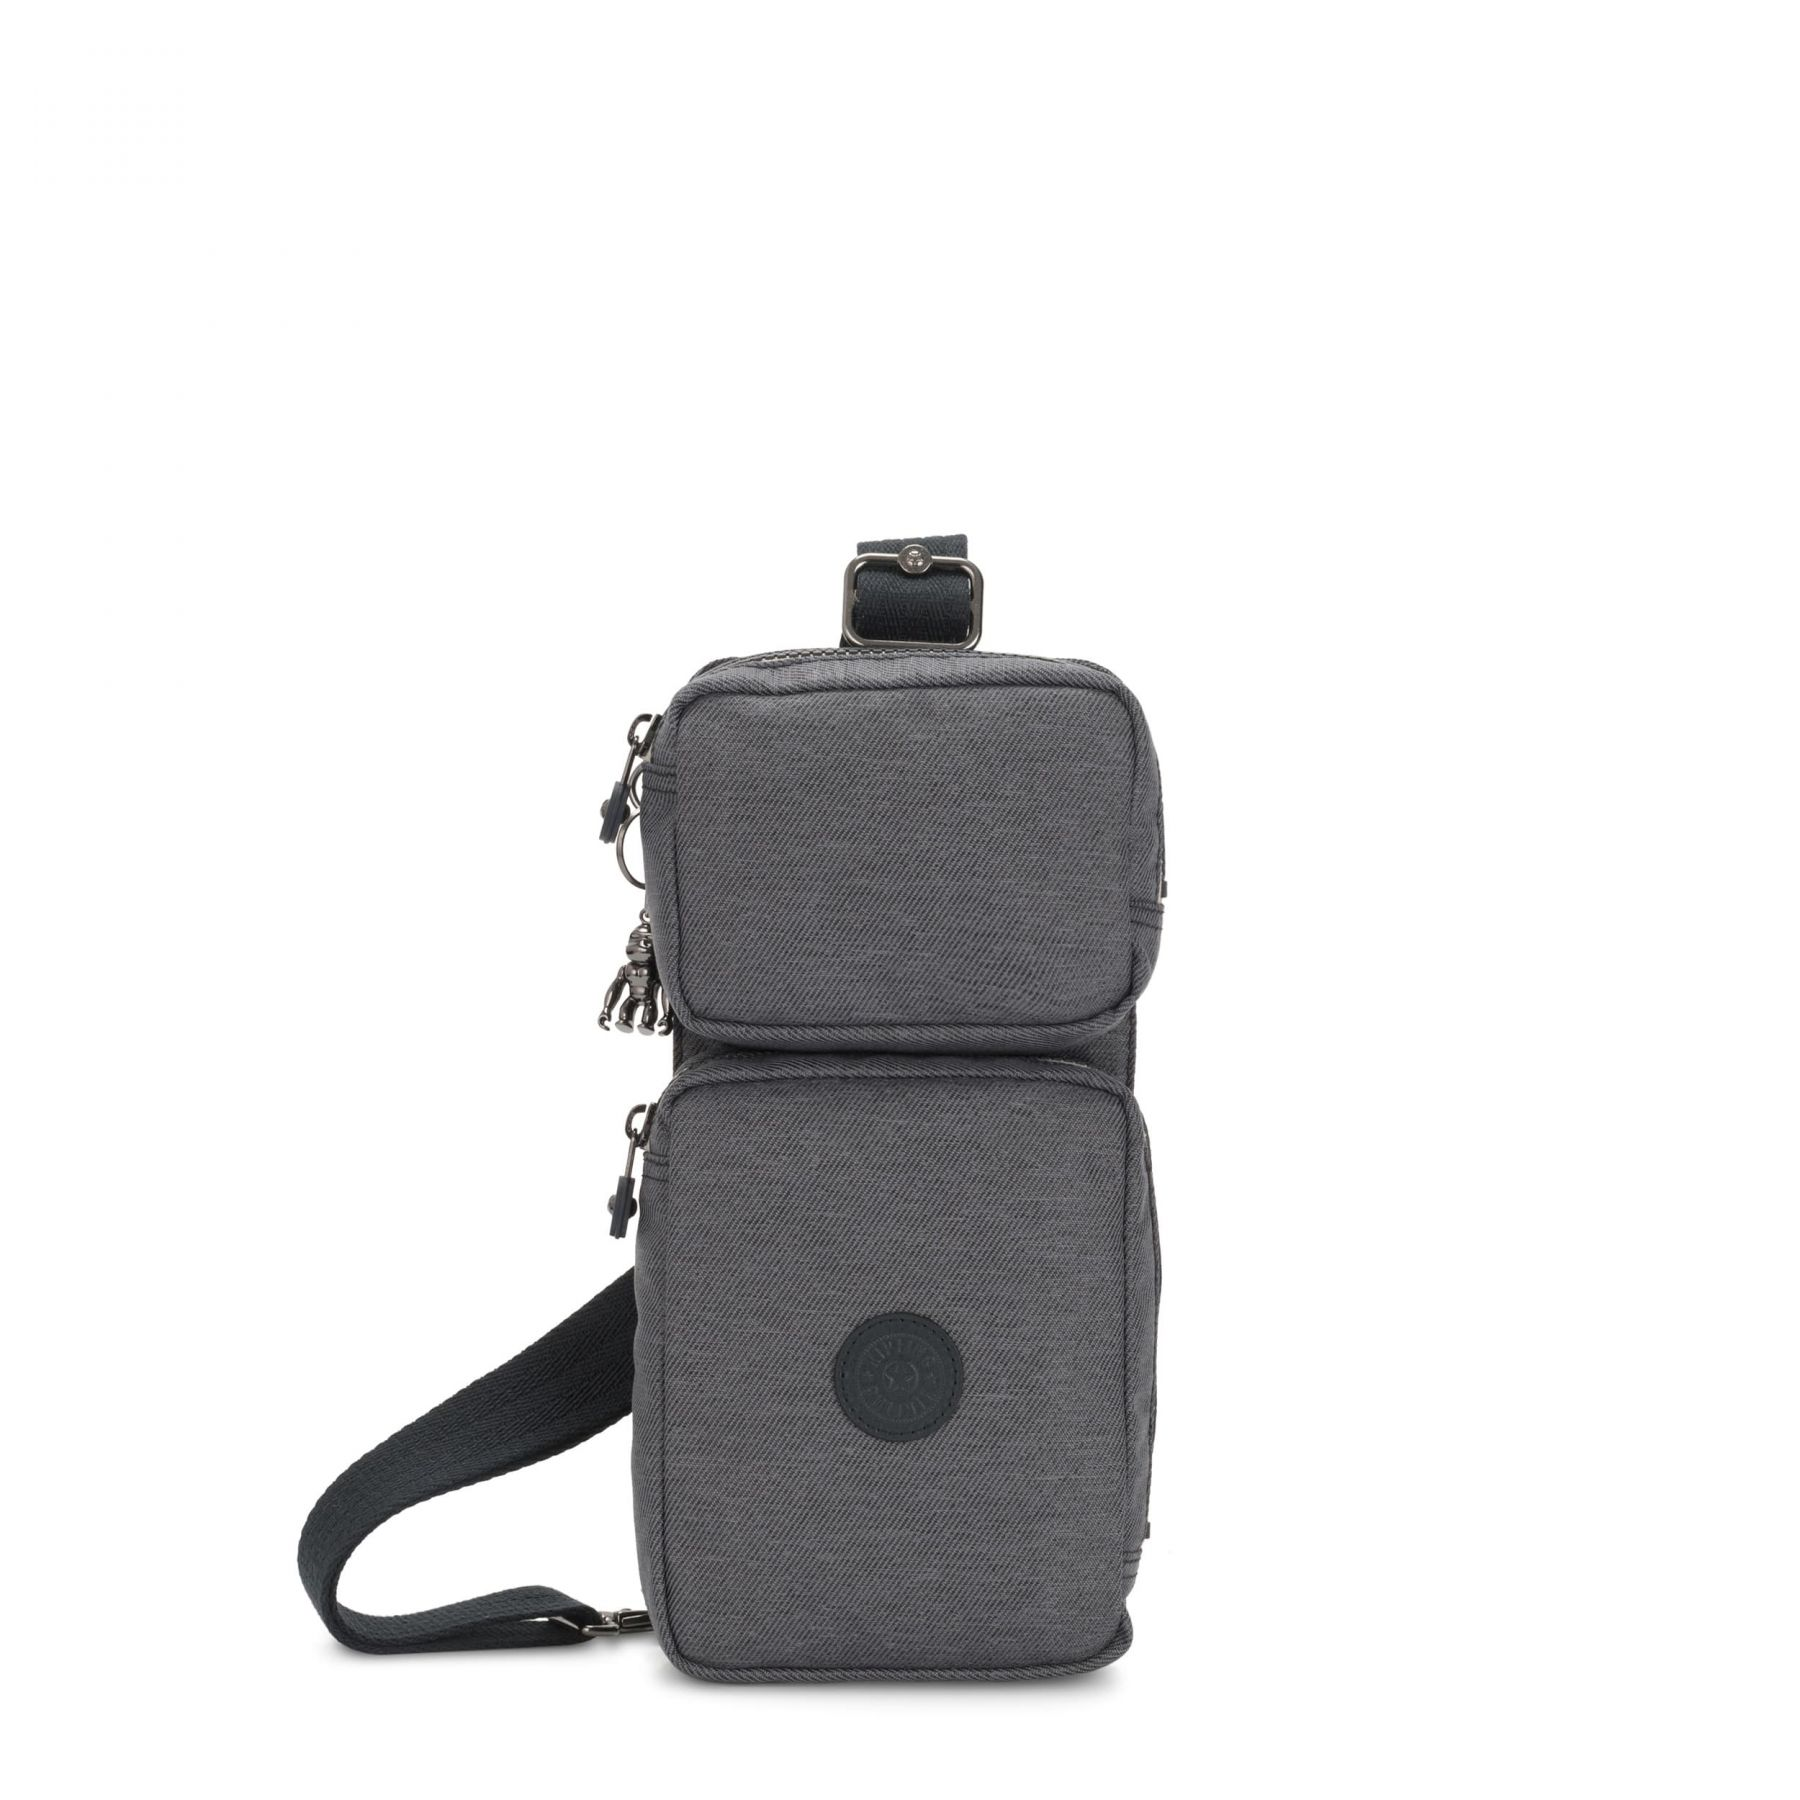 OVANDO Latest Shoulder Bags by Kipling - Front view